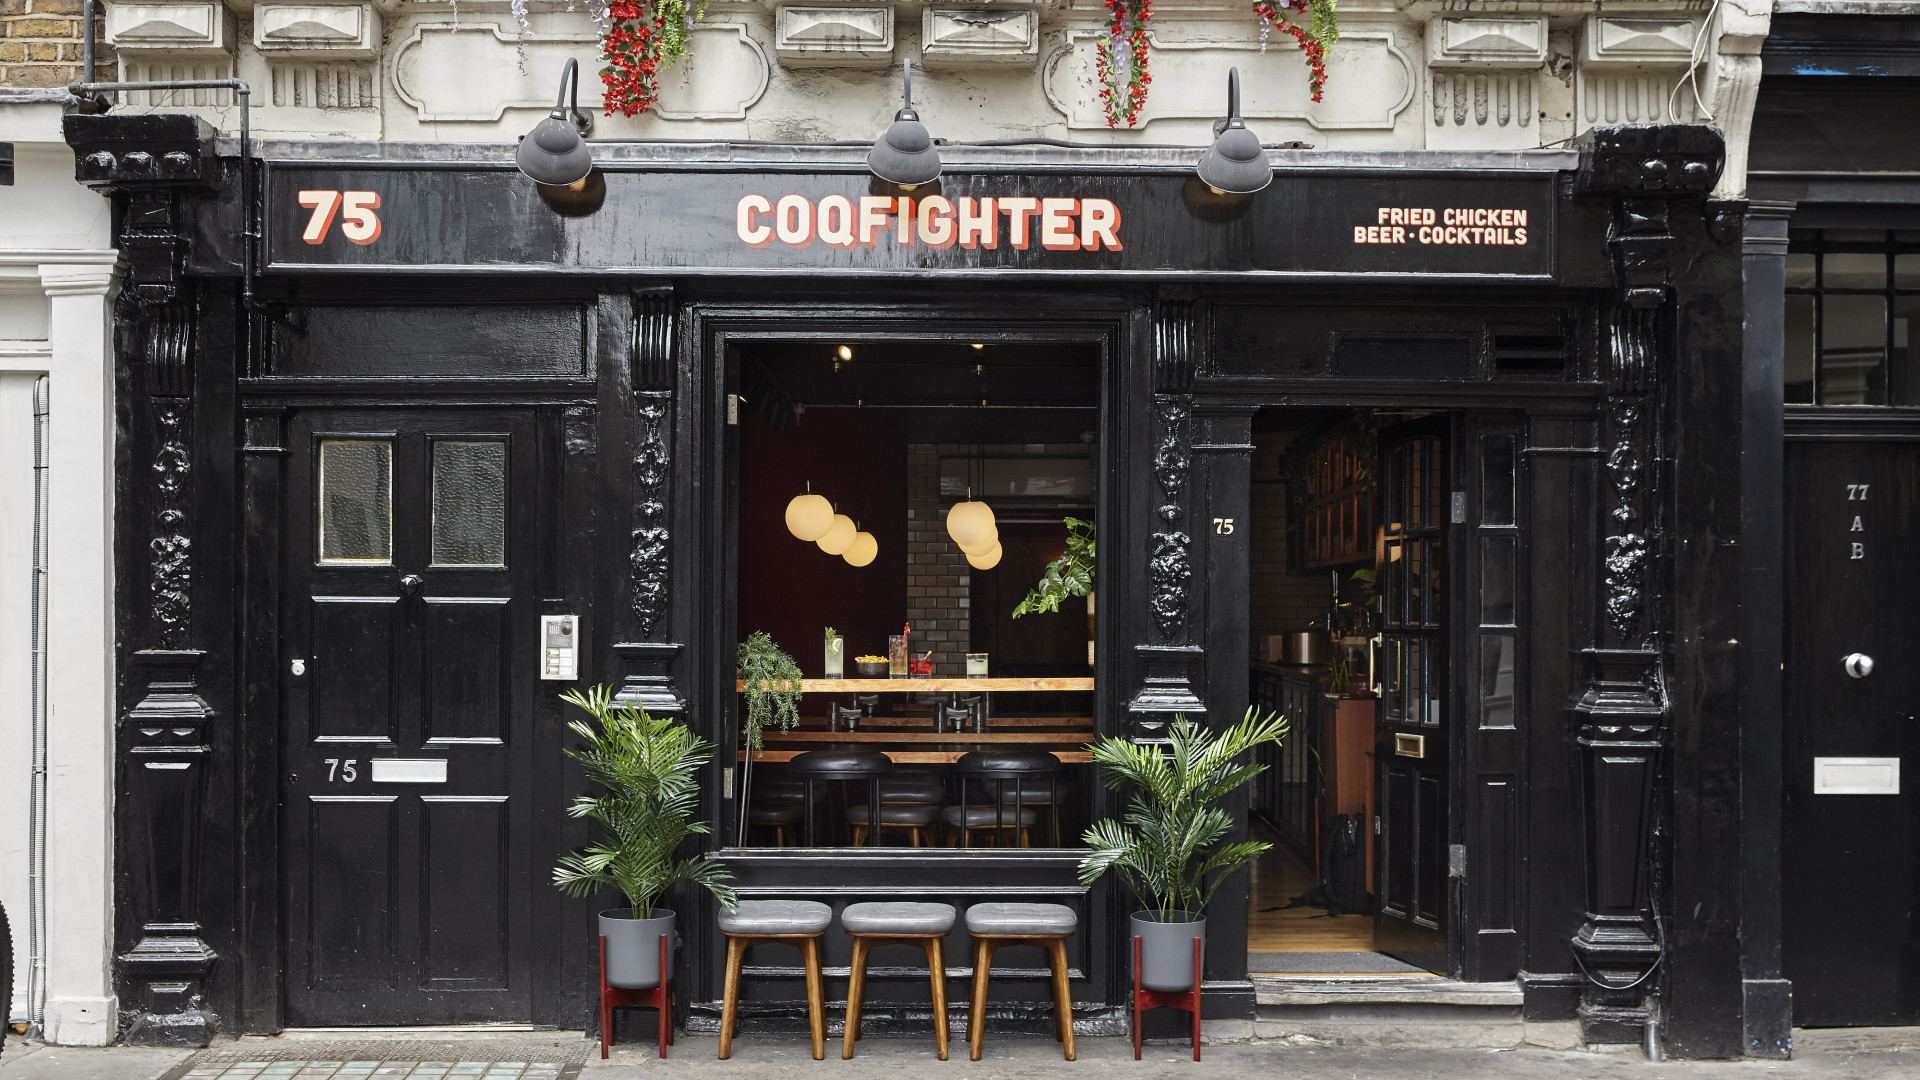 The exterior at Coqfighter in Soho